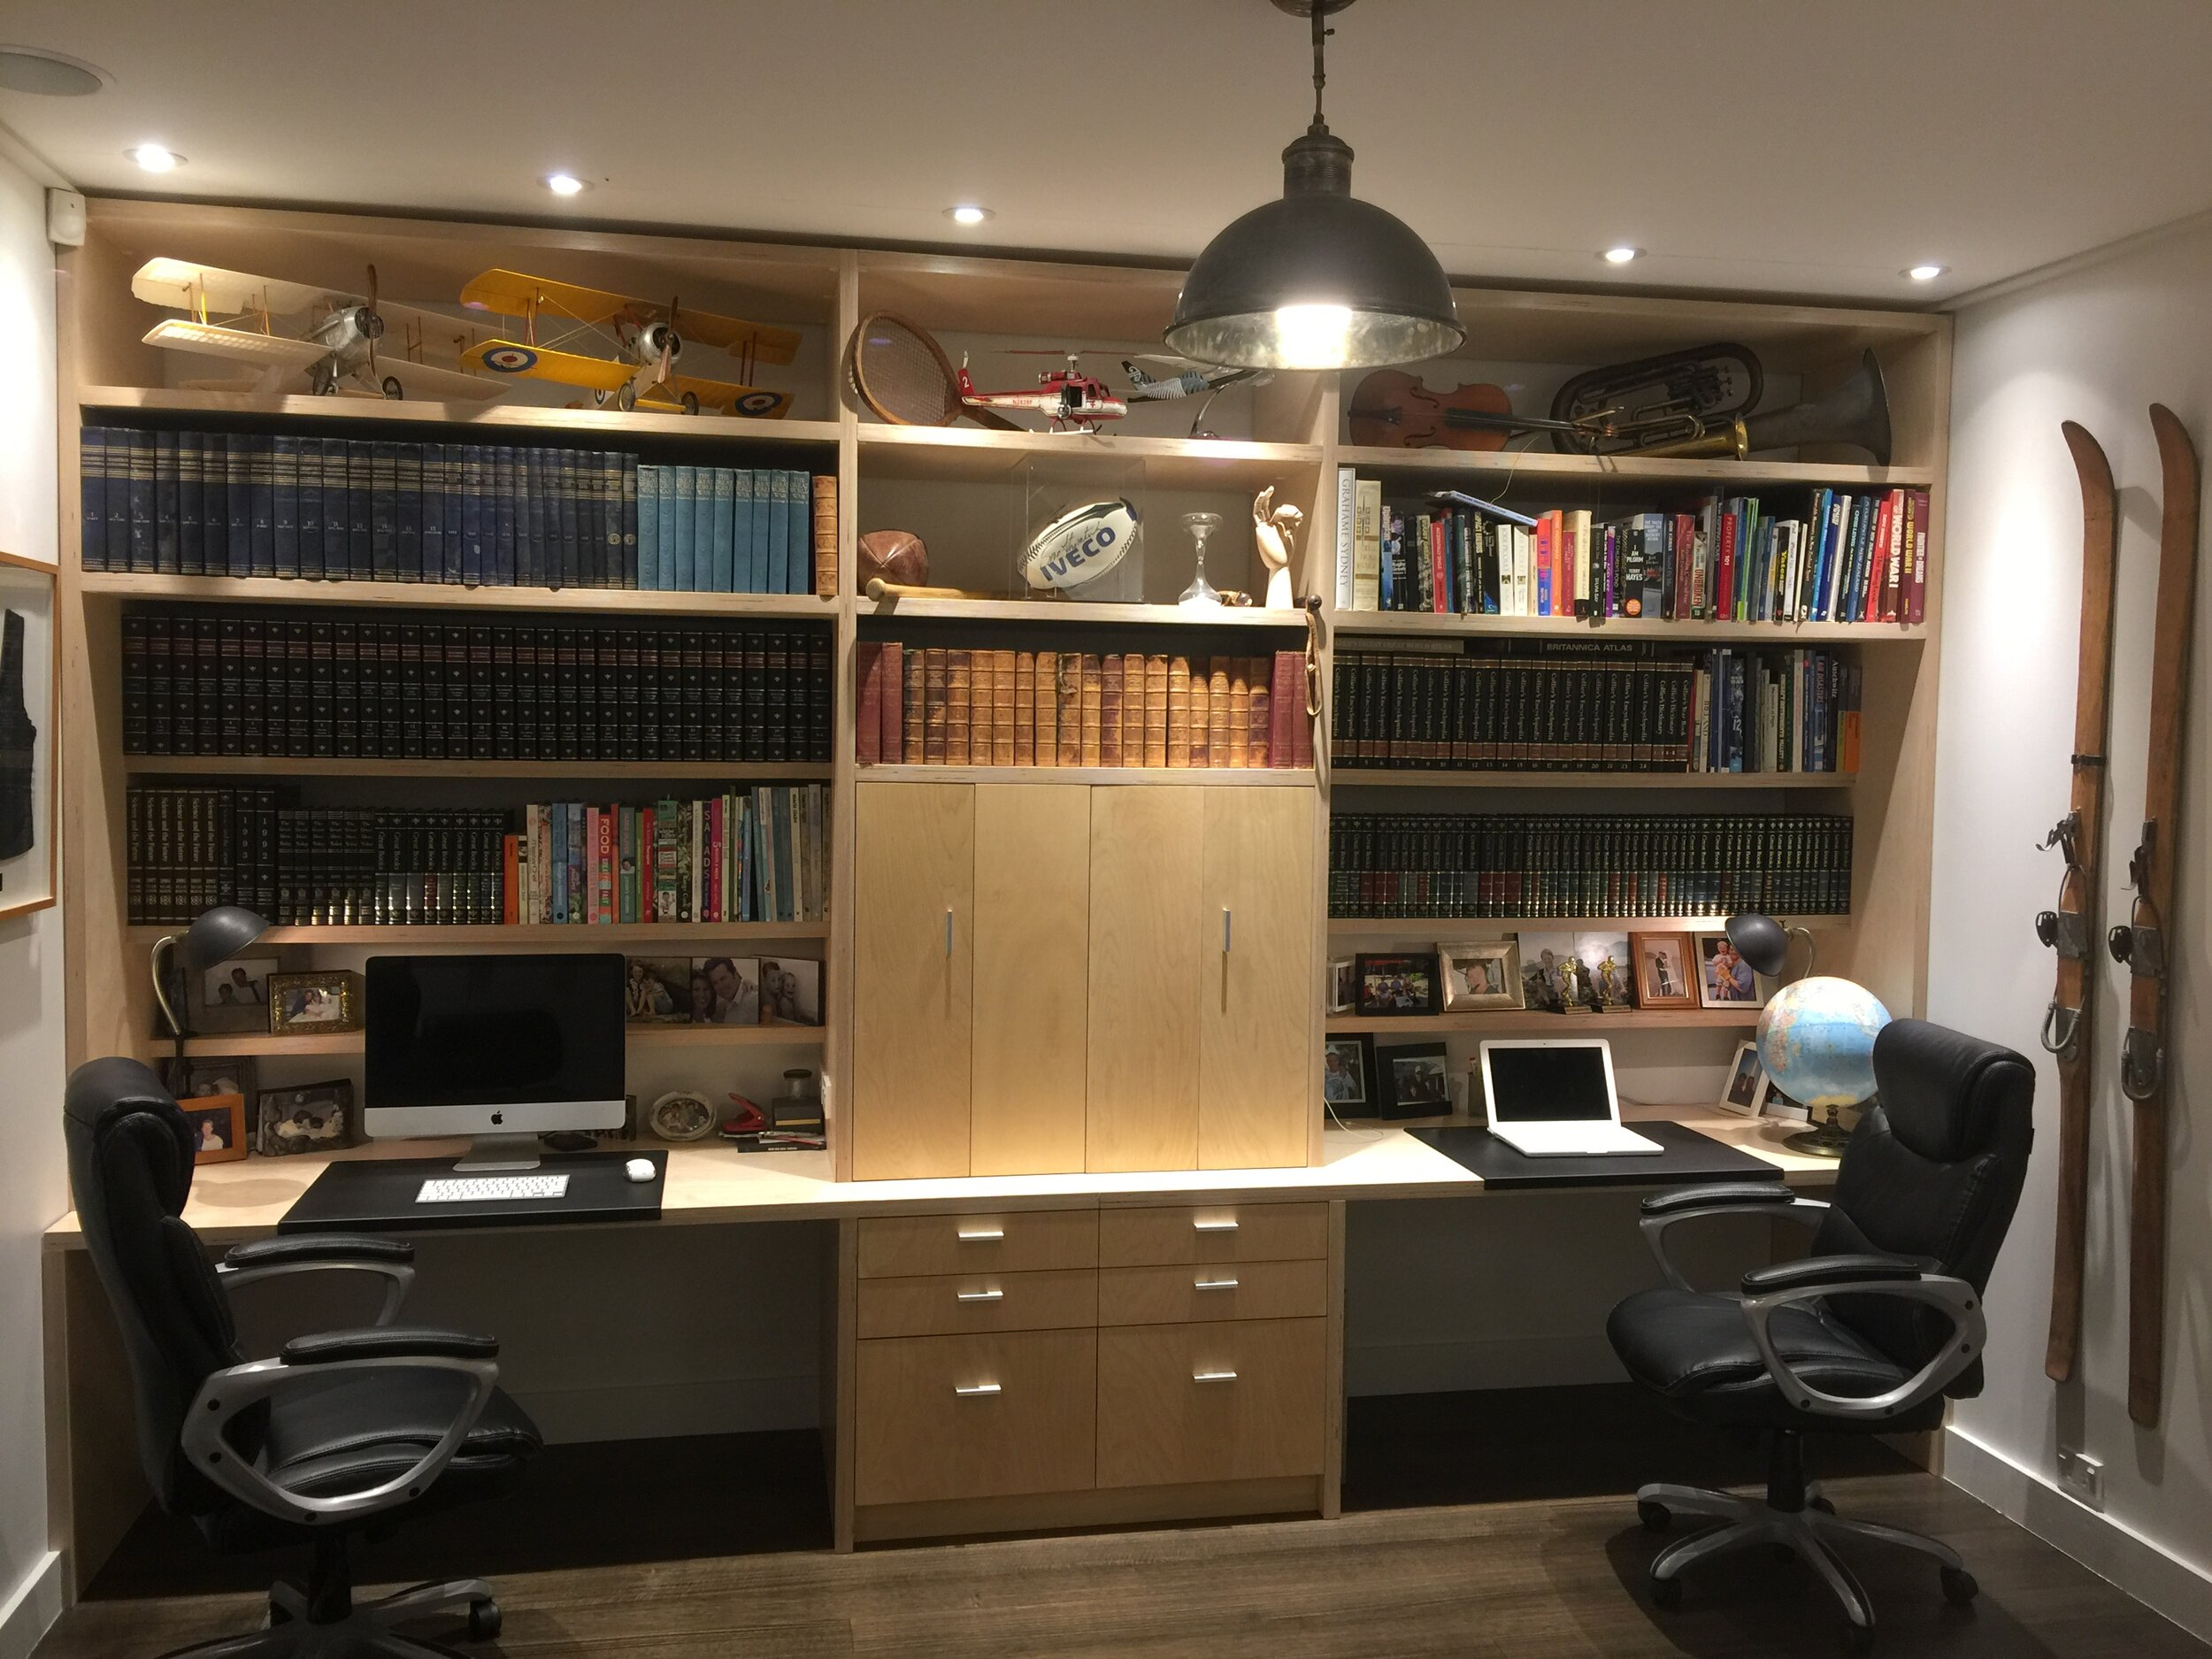 Bespoke desk, shelves and cabinets for a home library.